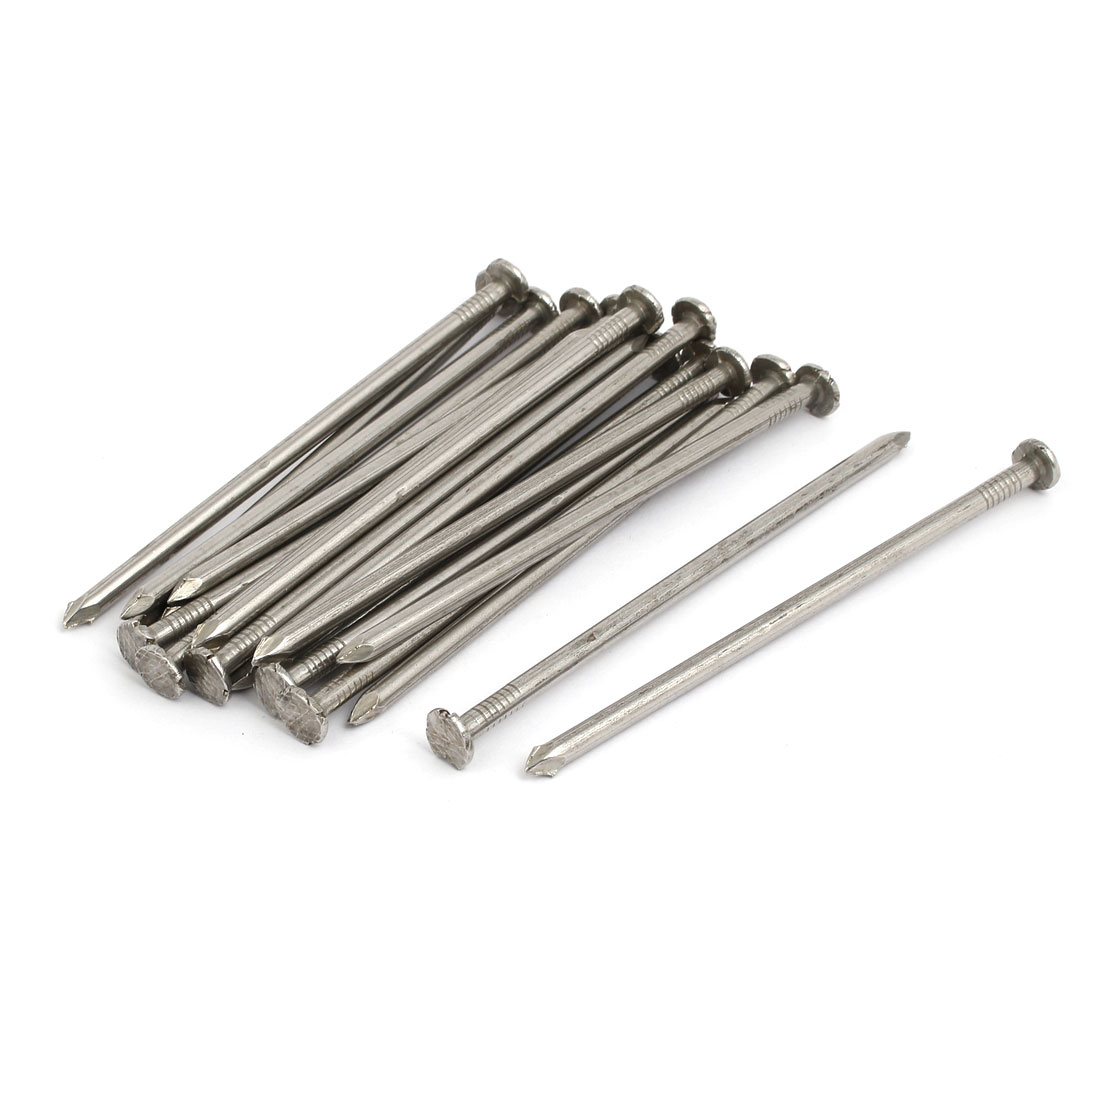 4 in. 304 Stainless Steel Cement Wood Sliding Nail Silver Tone (20-pack)